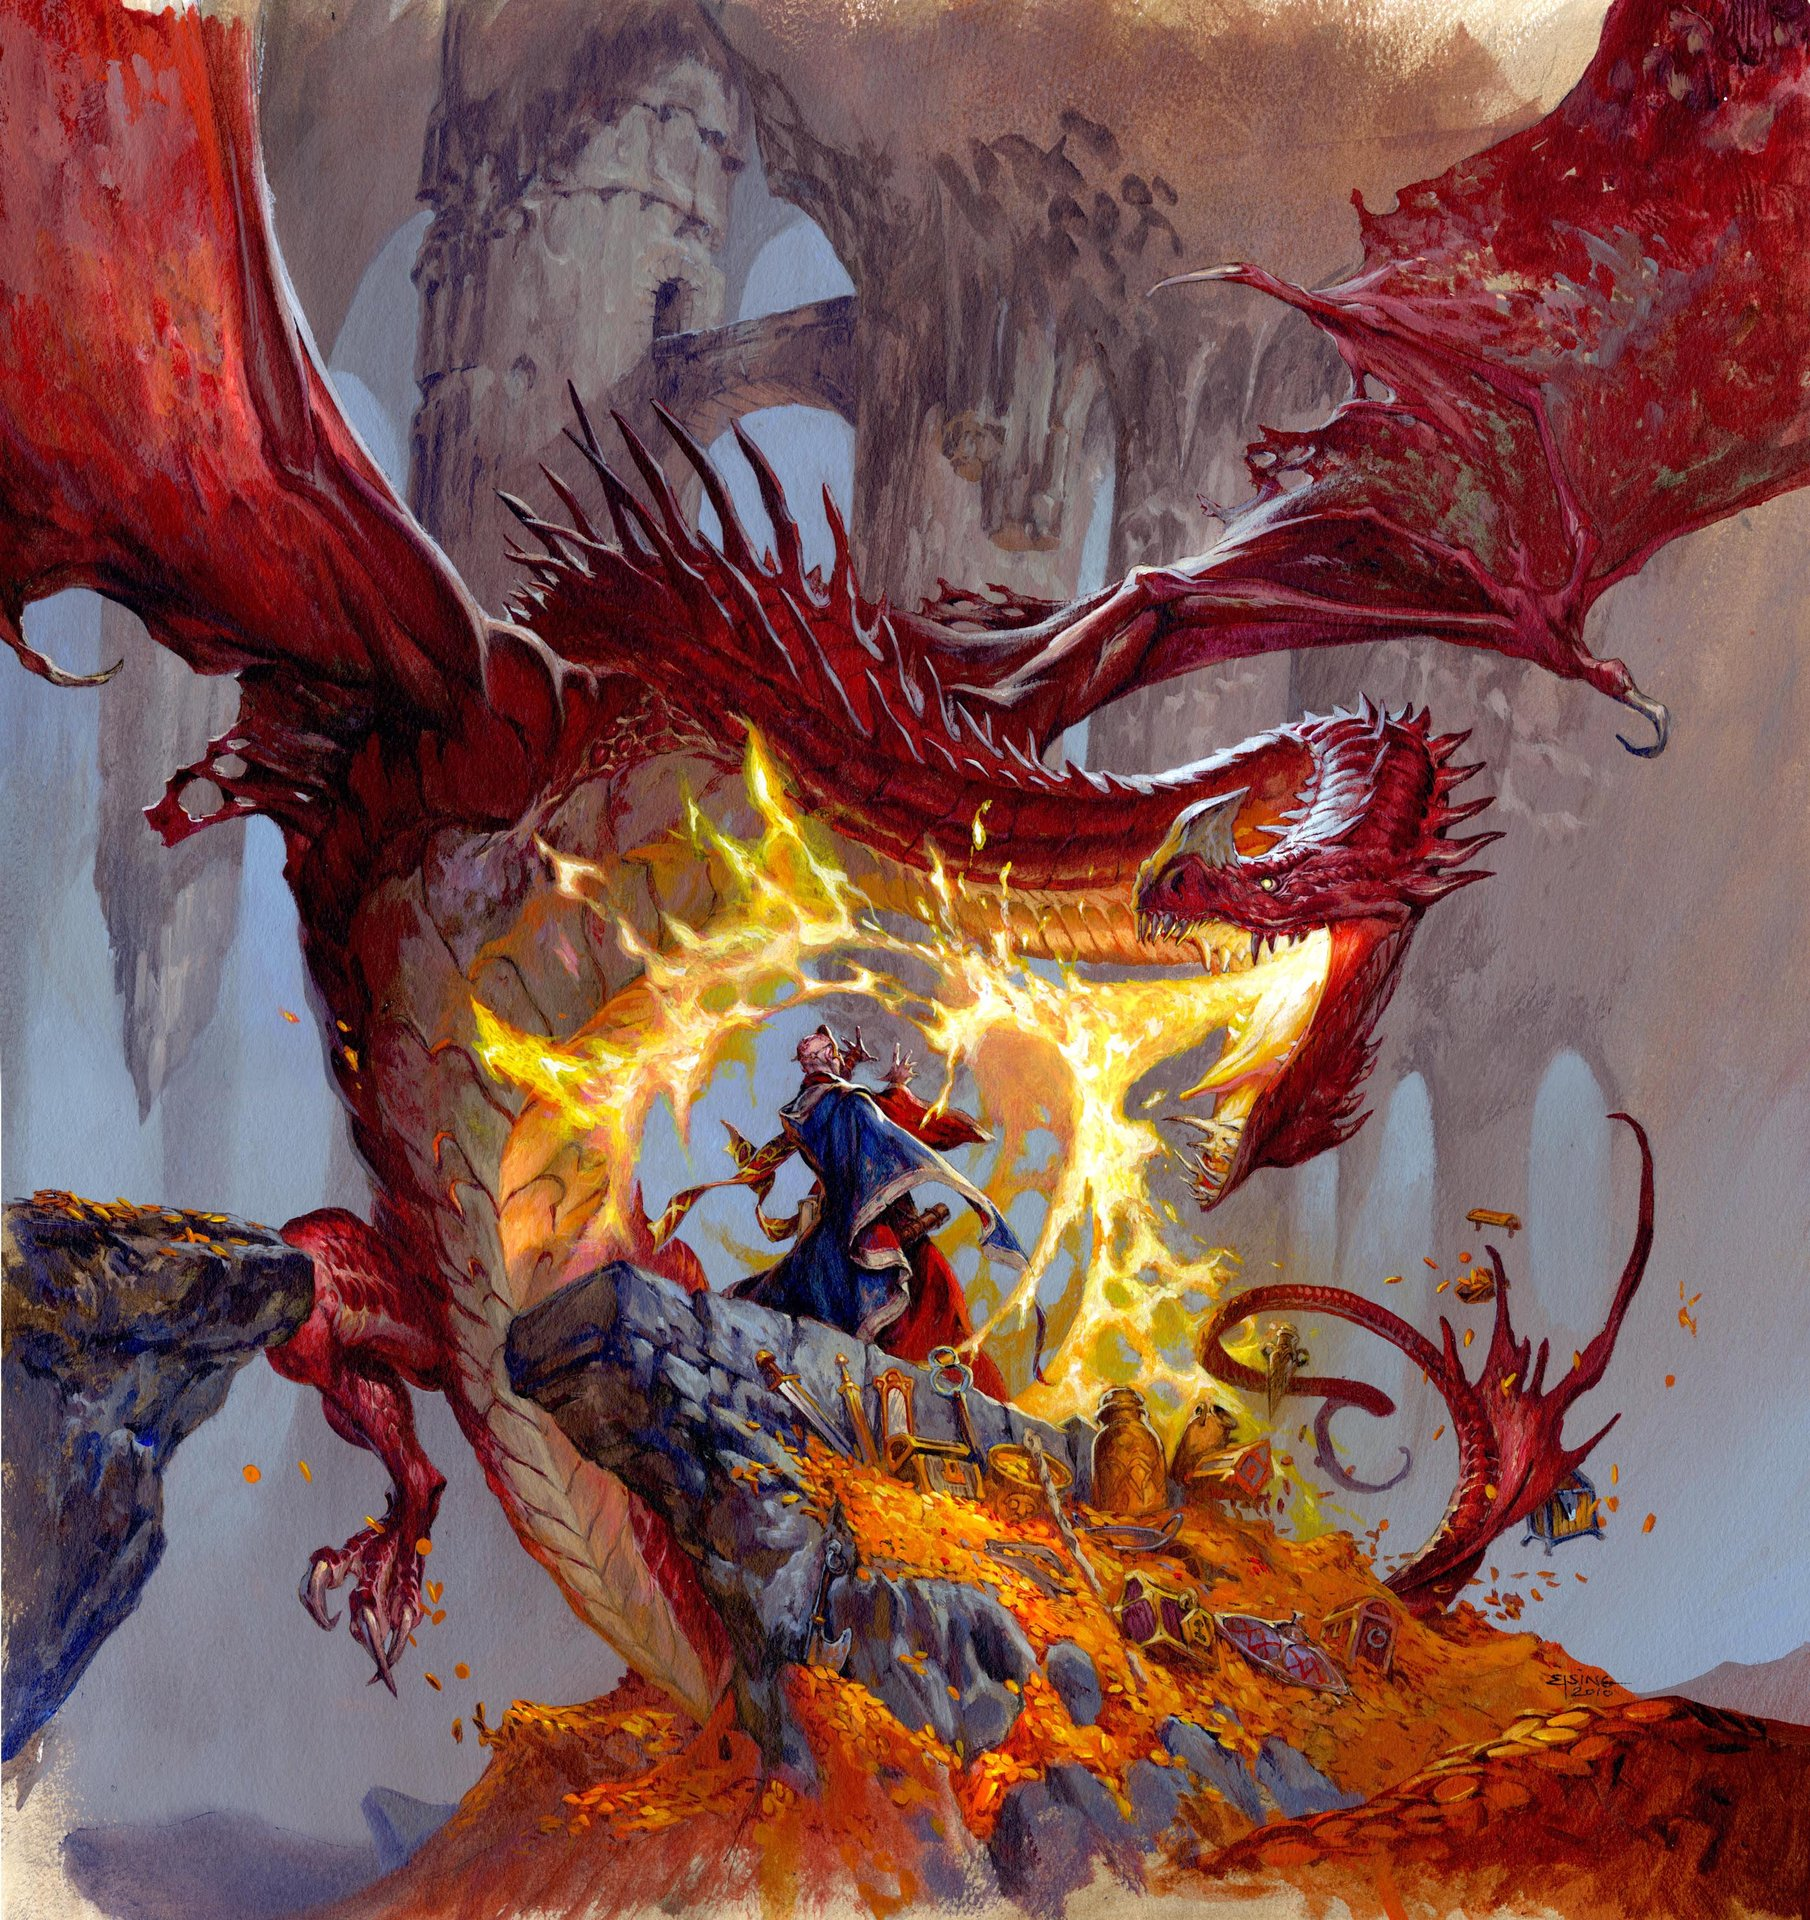 Jesper Ejsing Acrylic Painting DungeonQuest Boardgame cover. Fantasy Flight Games